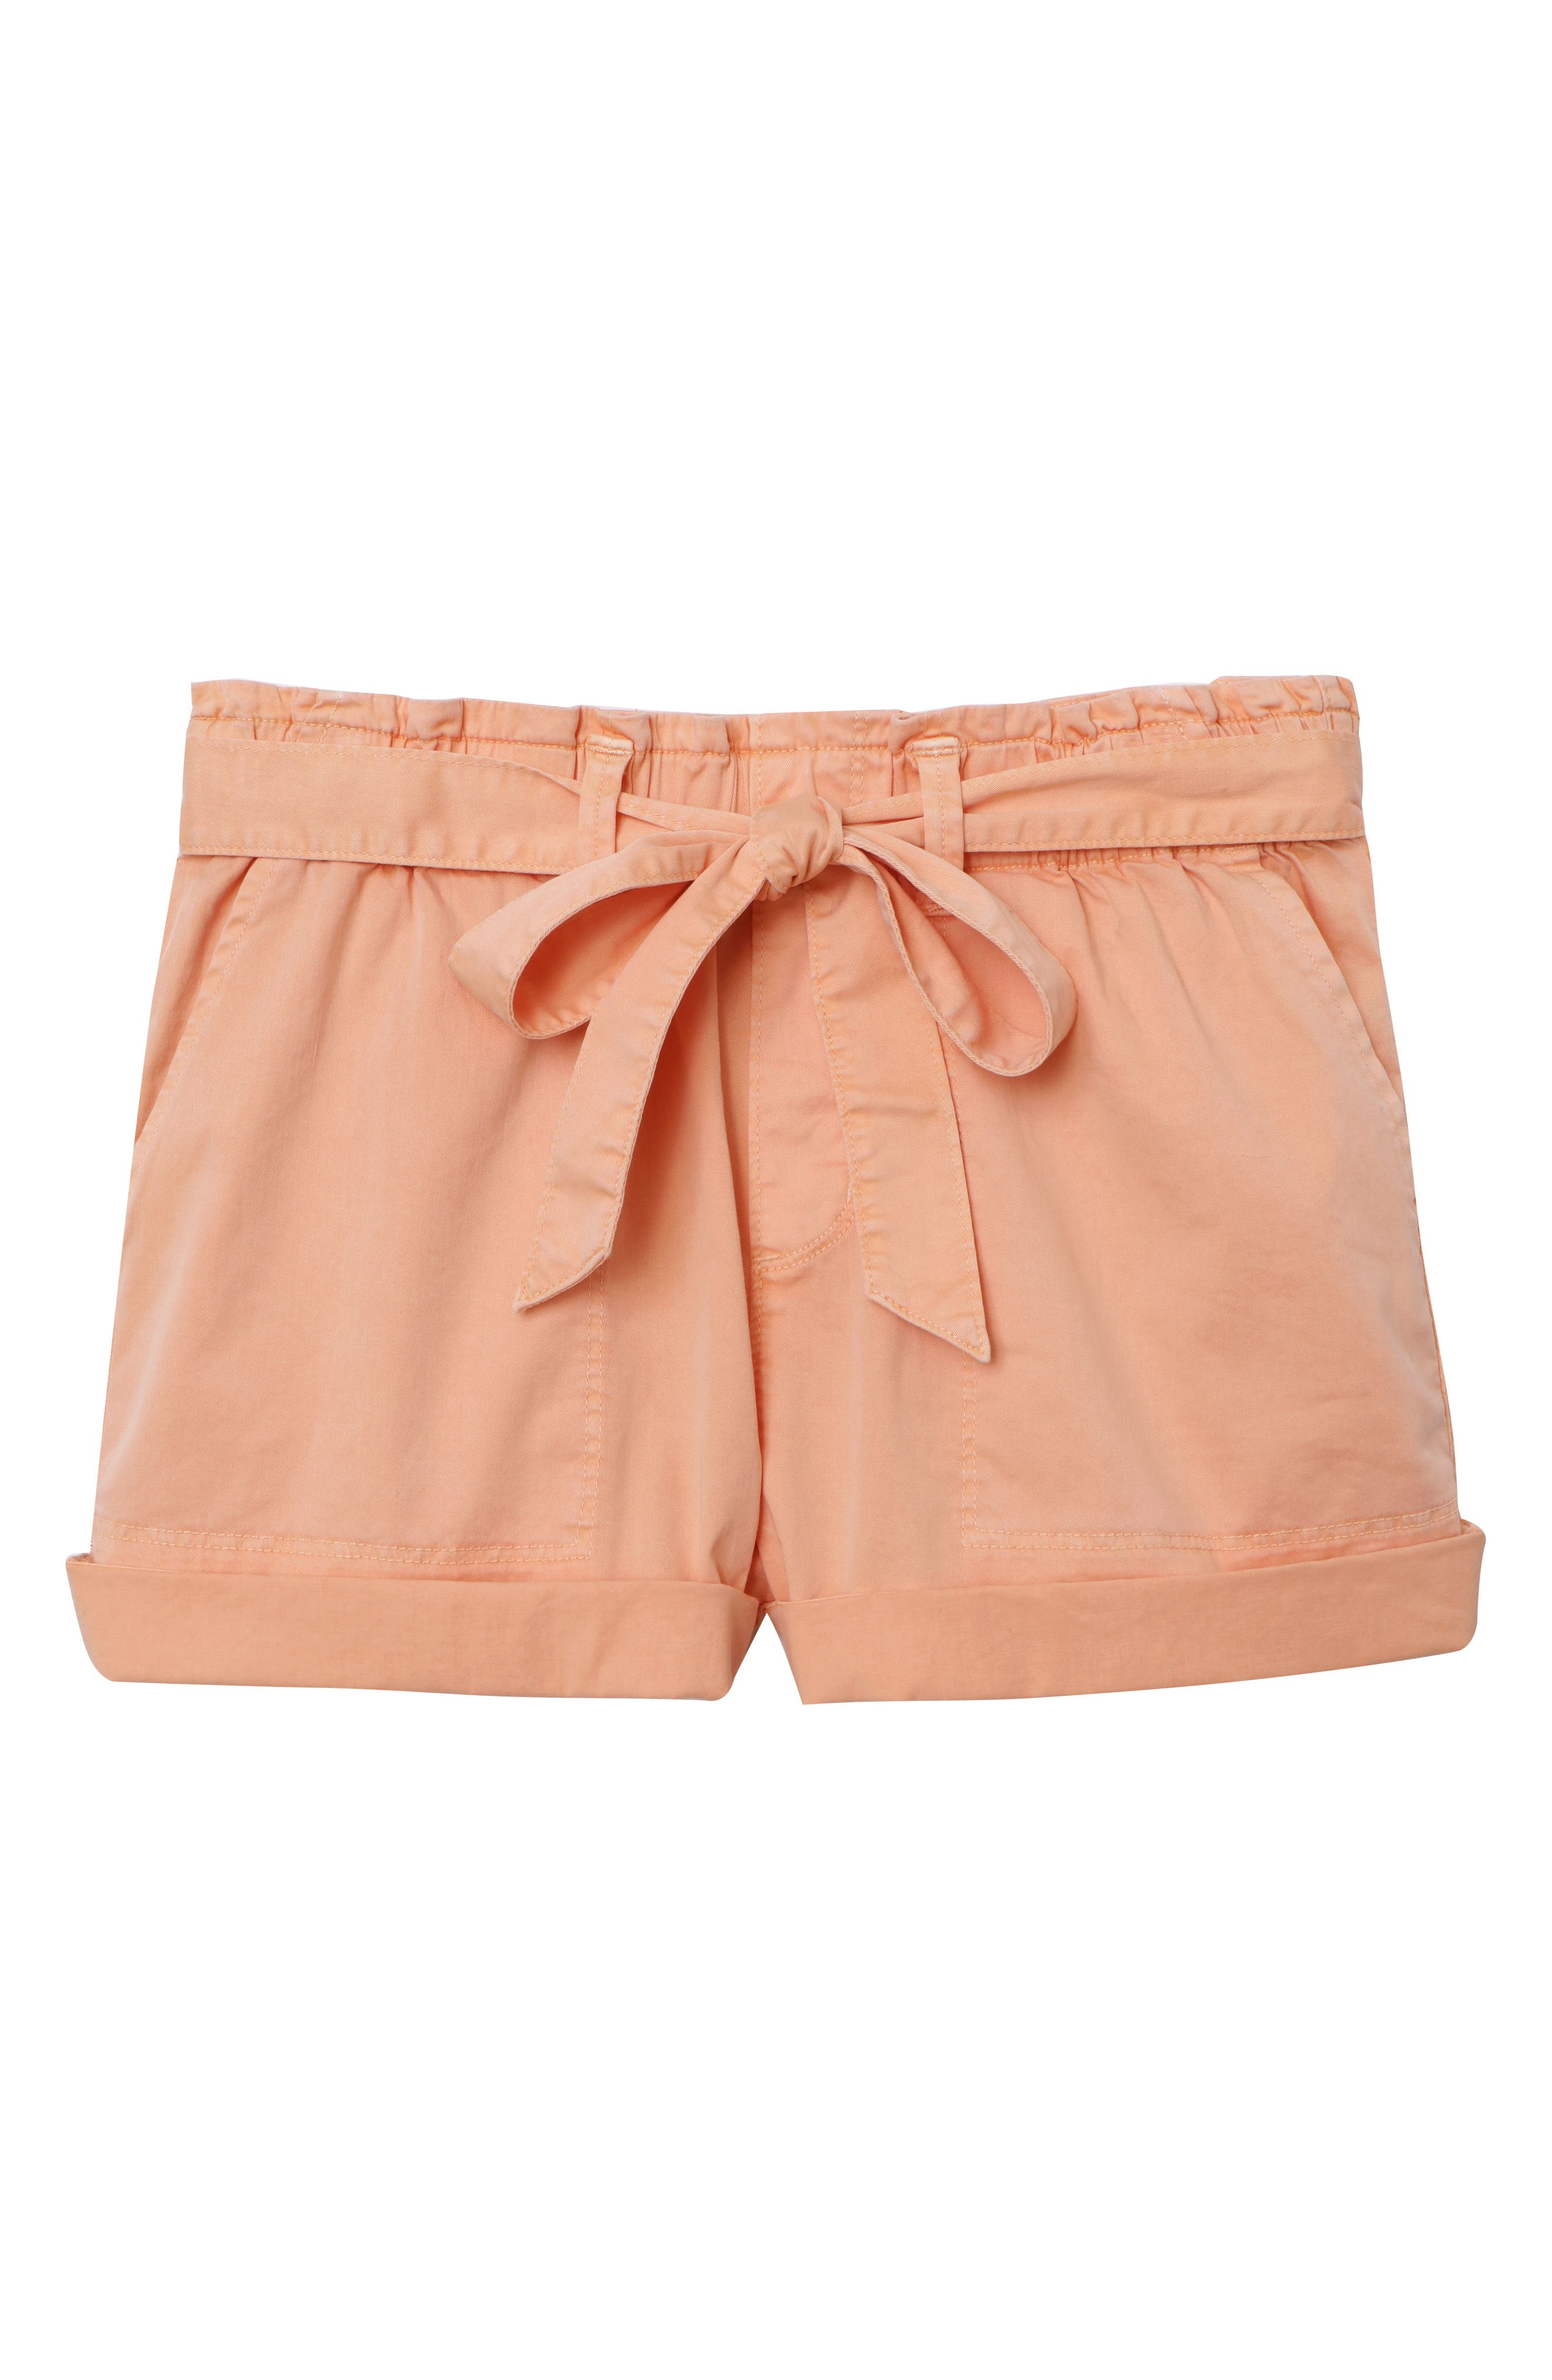 Daydreamer Shorts,                             Alternate thumbnail 13, color,